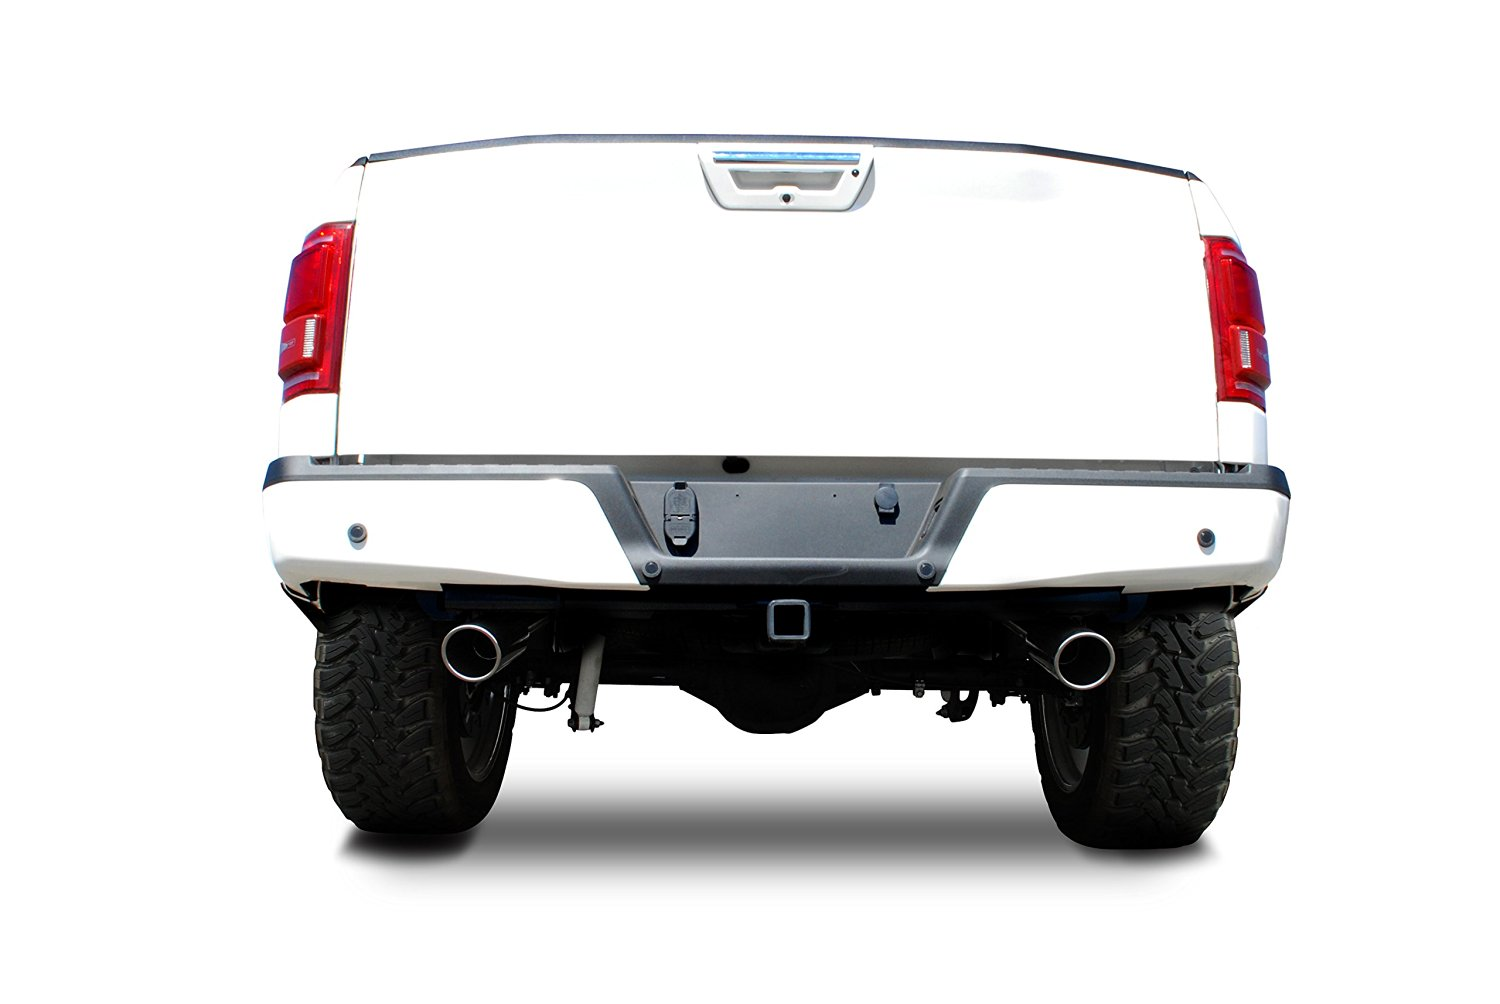 Ford F Exhaust Systems Best Exhaust Systems You Surely Want To Buy For Your Ford F Truck Aermech